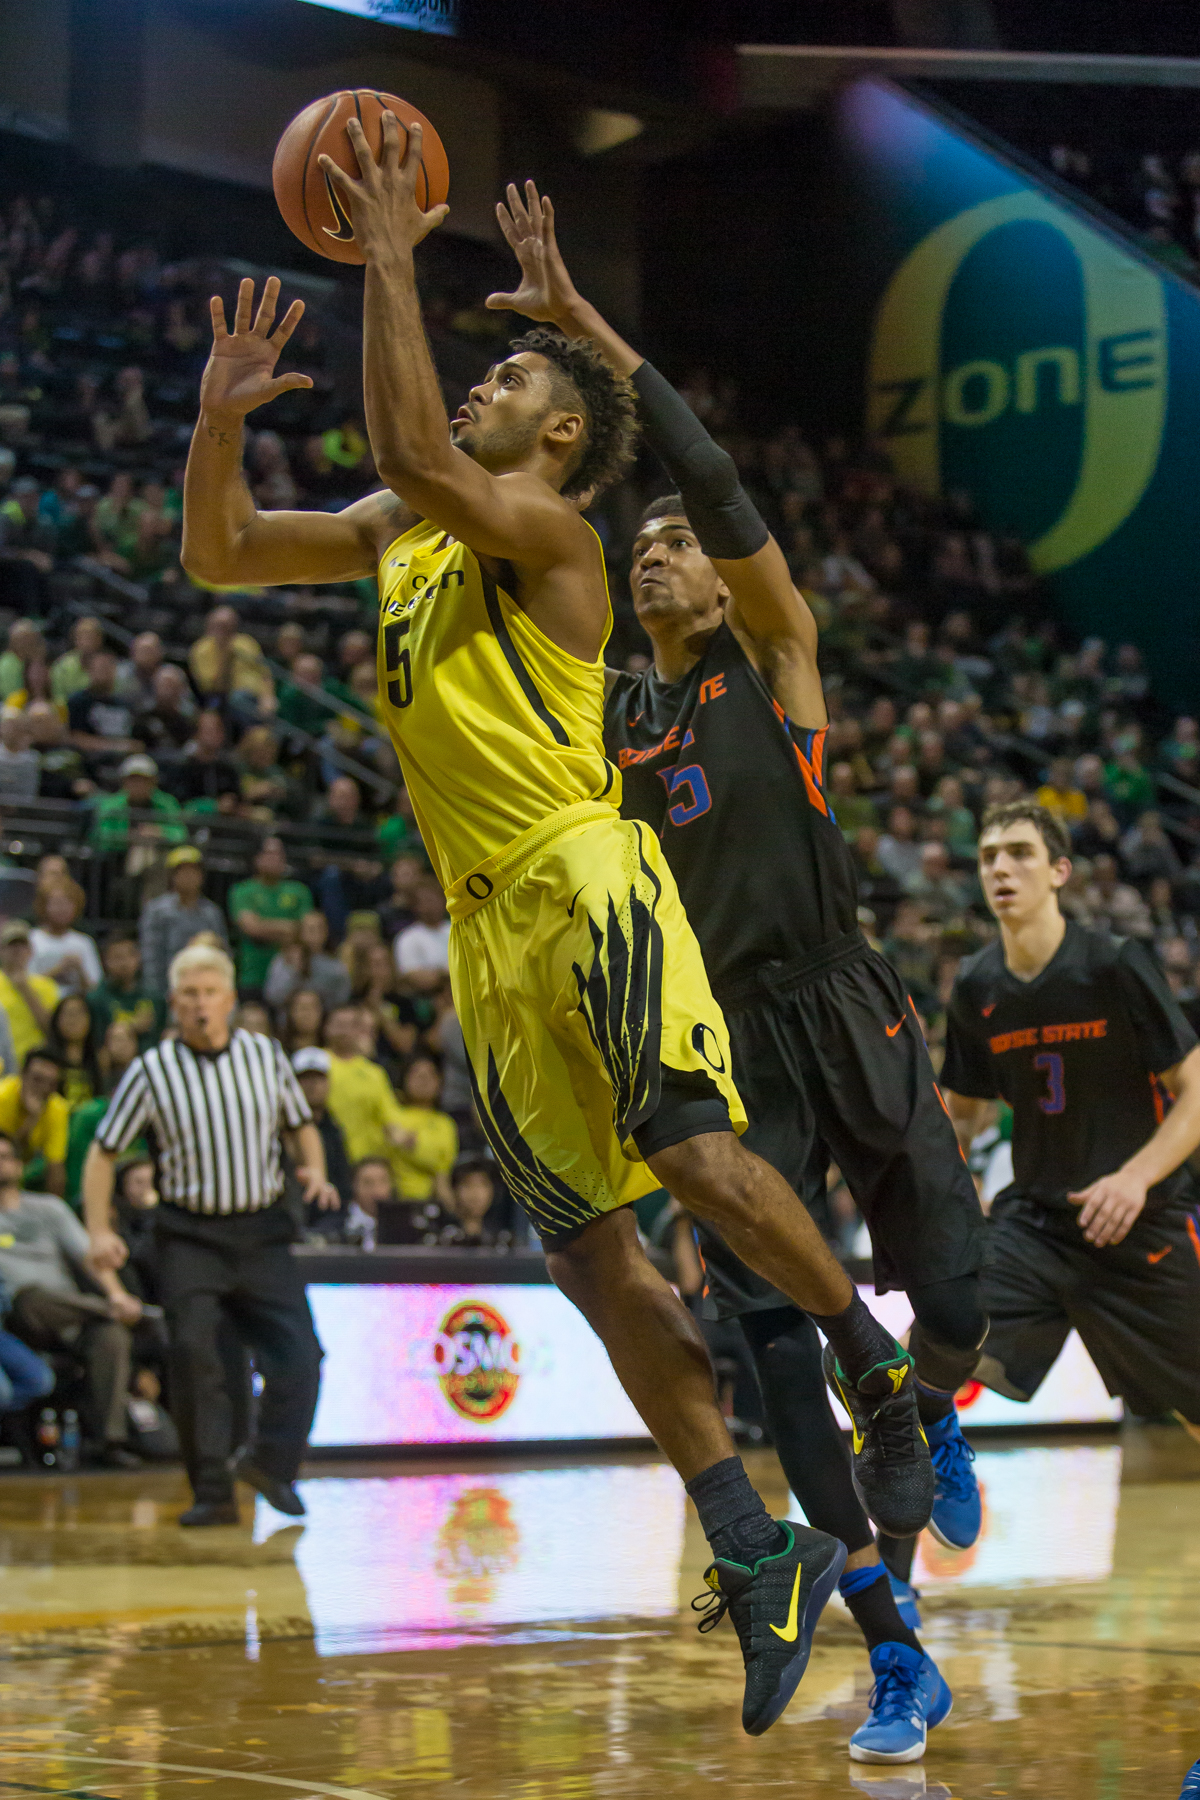 Oregon guard Tyler Dorsey (#5) gets past Boise State guard Chandler Hutchinson (#15) and lays the ball up. After trailing for most of the game, the Oregon Ducks